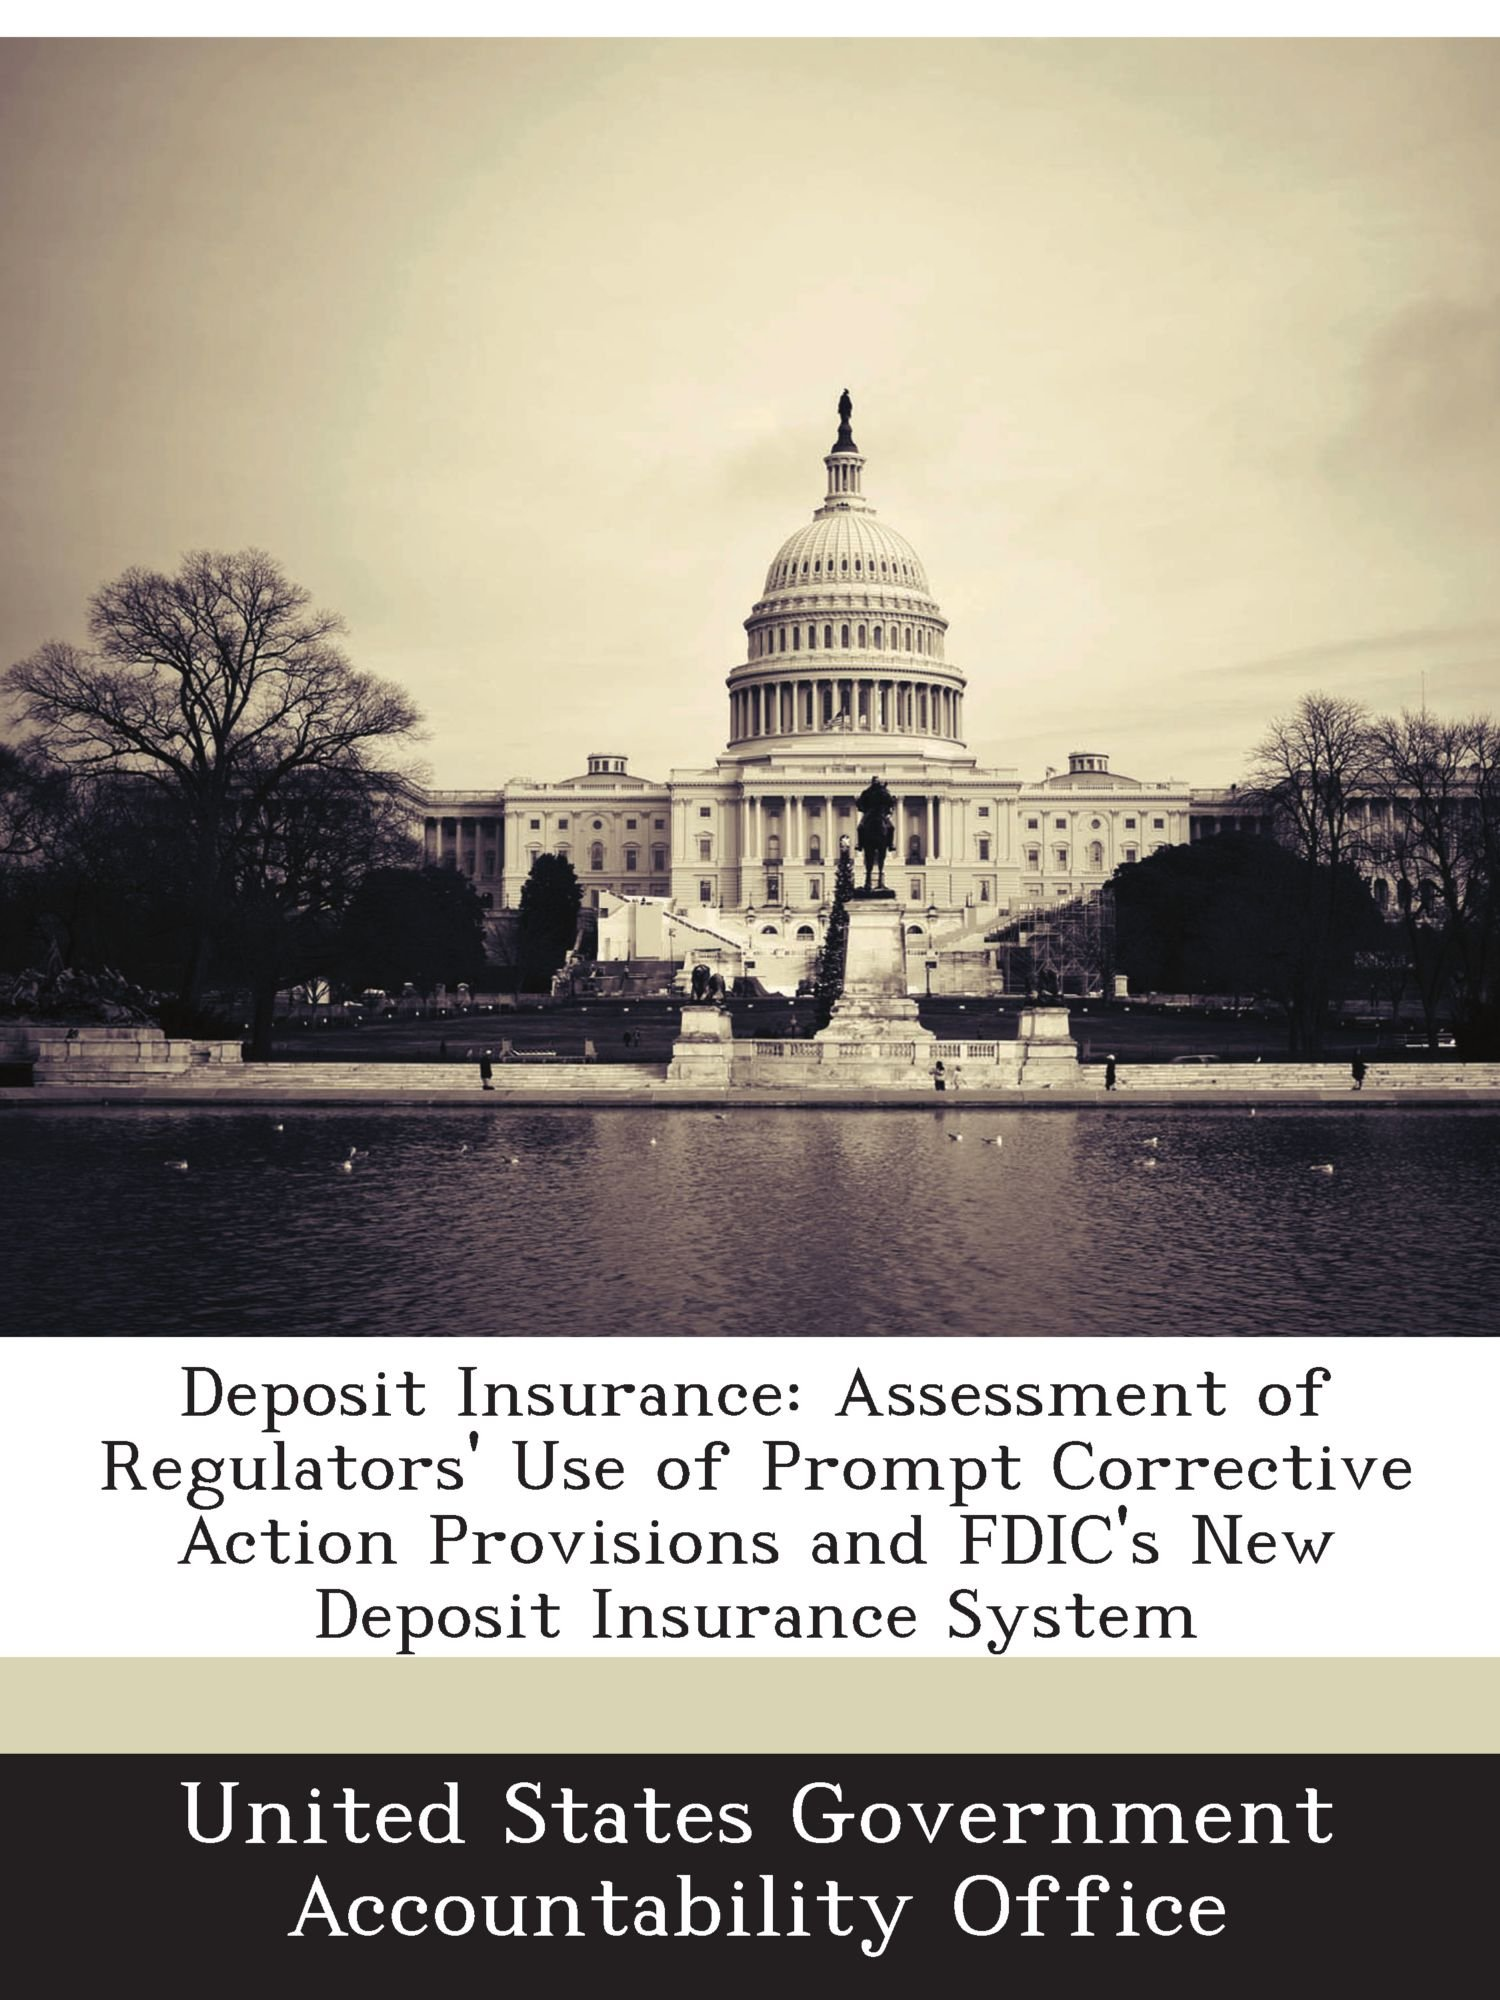 Deposit Insurance: Assessment of Regulators' Use of Prompt Corrective Action Provisions and FDIC's New Deposit Insurance System pdf